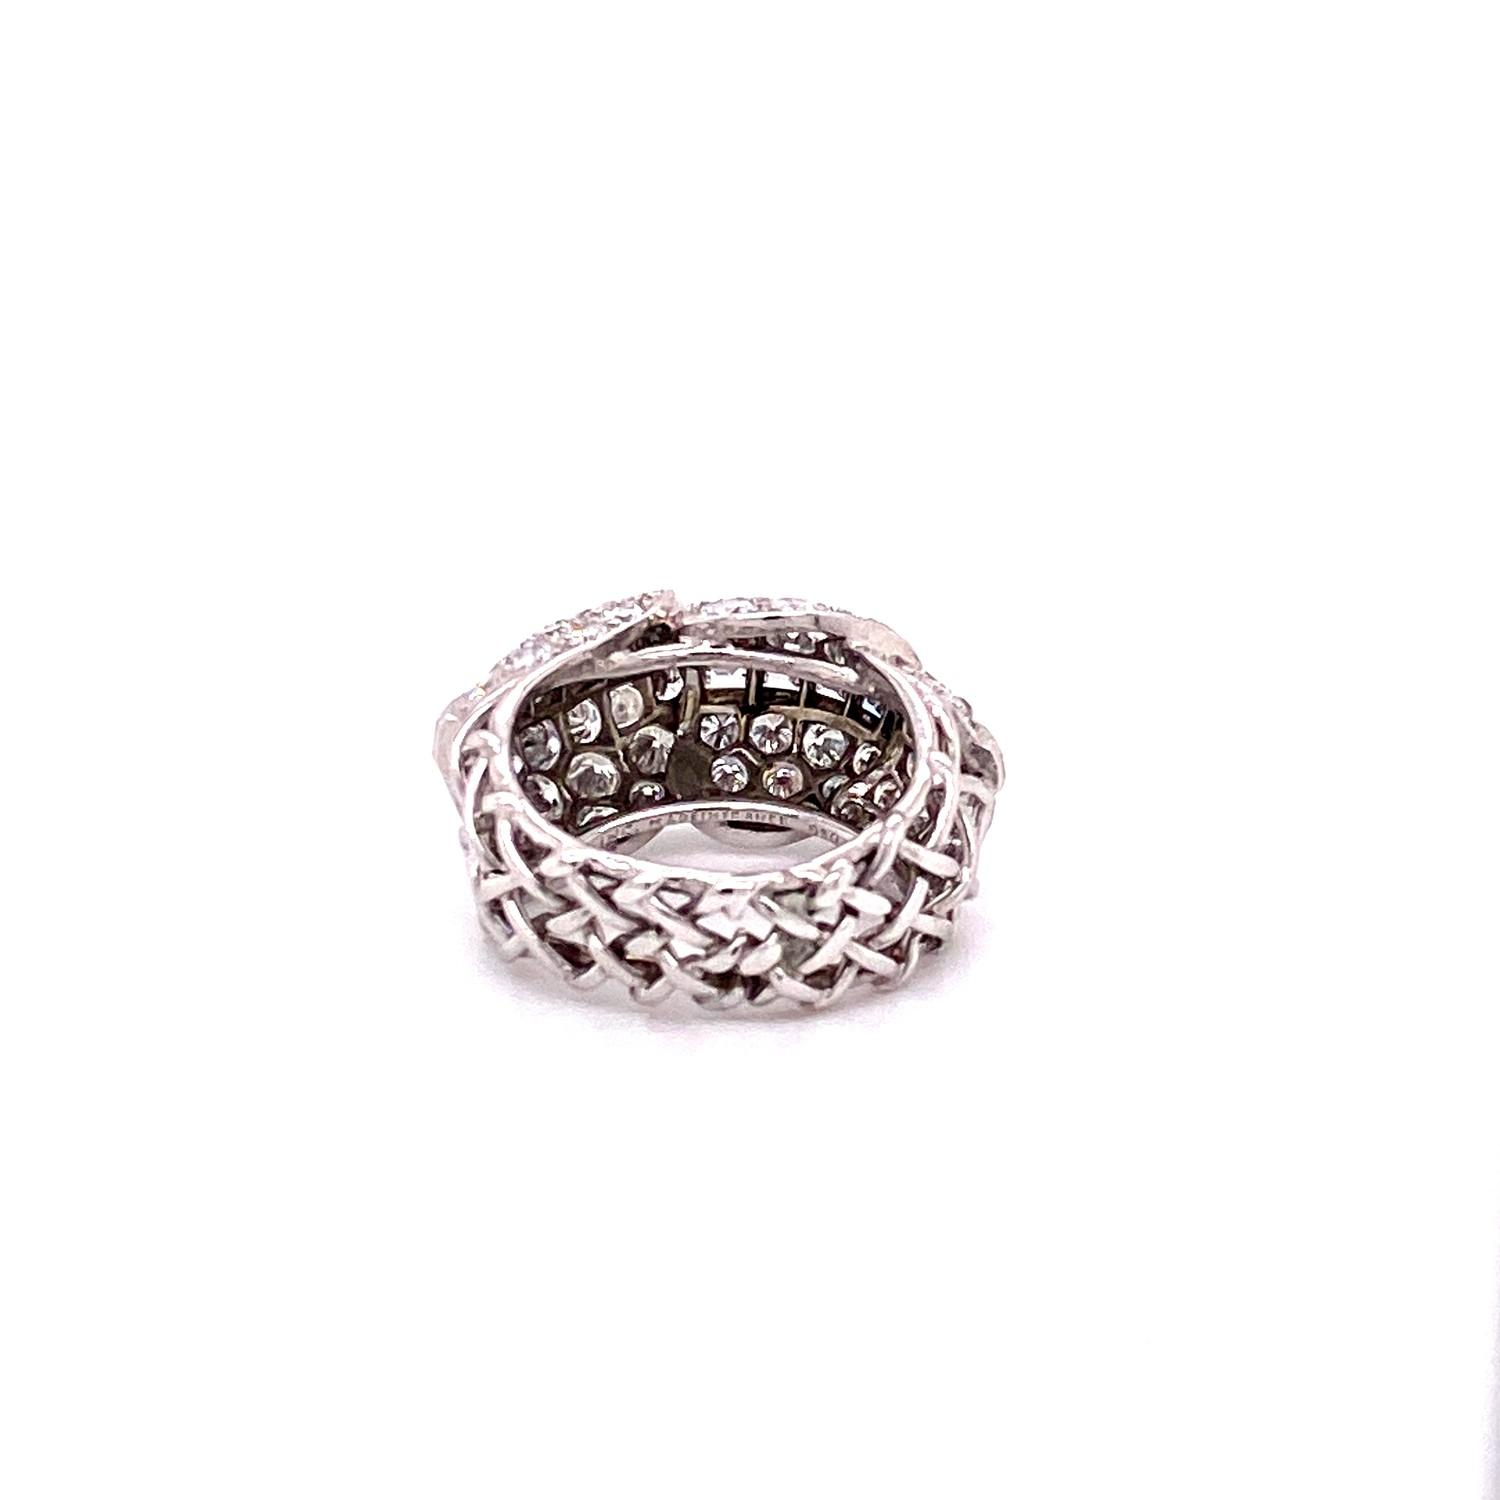 A 1950's Cartier Cocktail Ring, Cartier baguette and brilliant cut pave set dome top bombe ring - Image 7 of 8